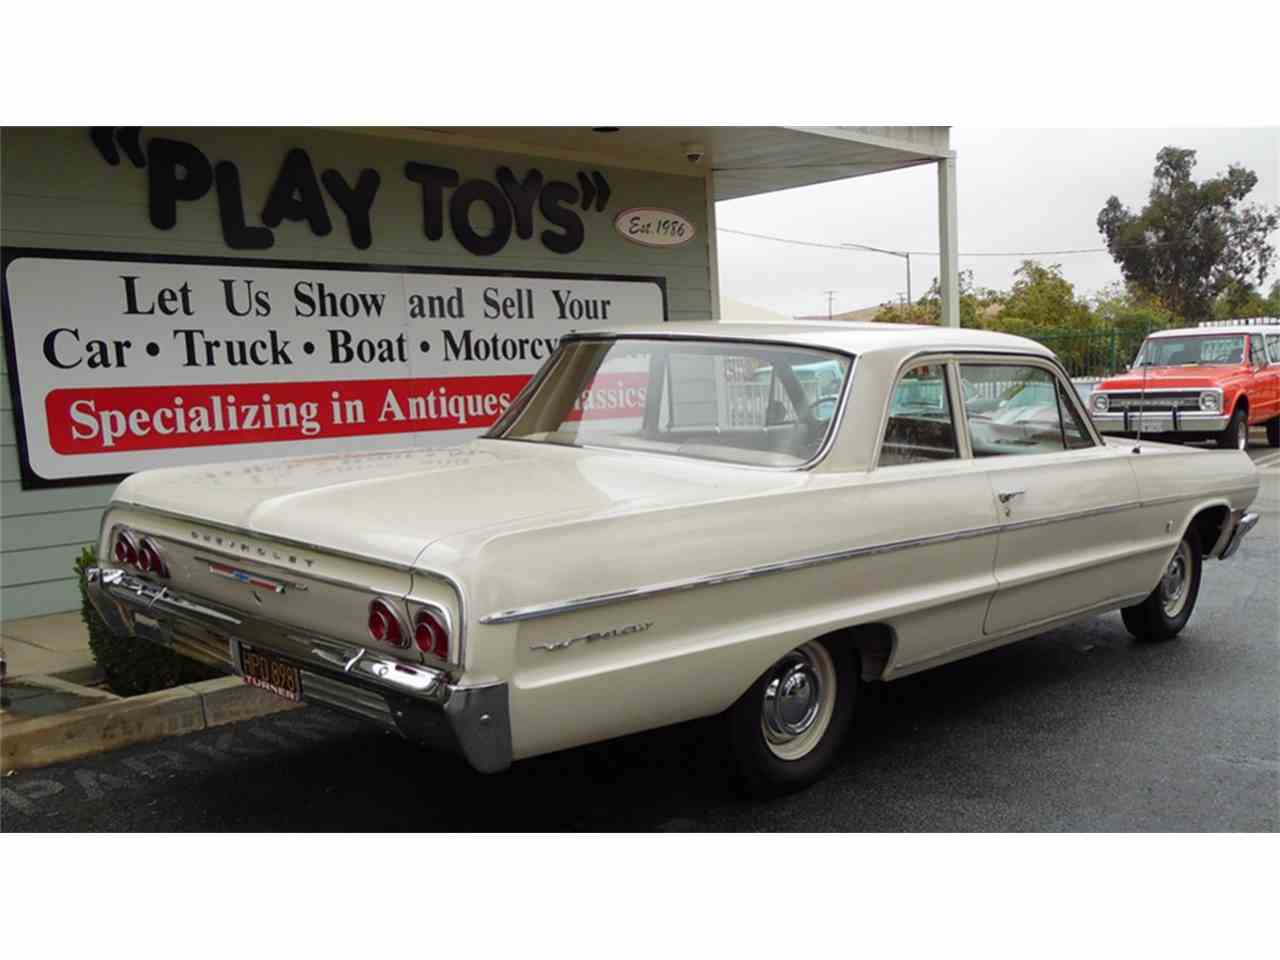 All Chevy chevy bel air 1964 : 1964 Chevrolet Bel Air for Sale | ClassicCars.com | CC-1040596